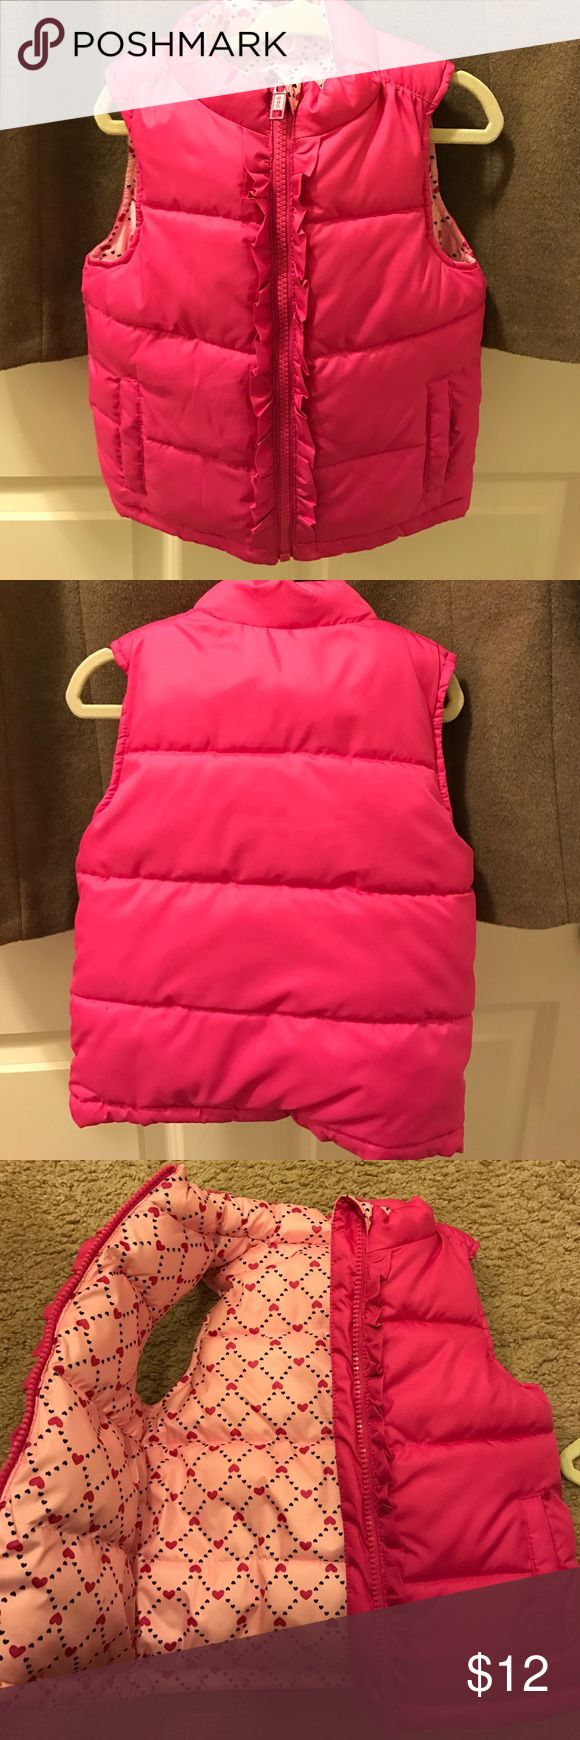 Pink Vest Super thick and warm - like new condition! No tag, fits my 3 y/o so likely 2T or 3T Jackets & Coats